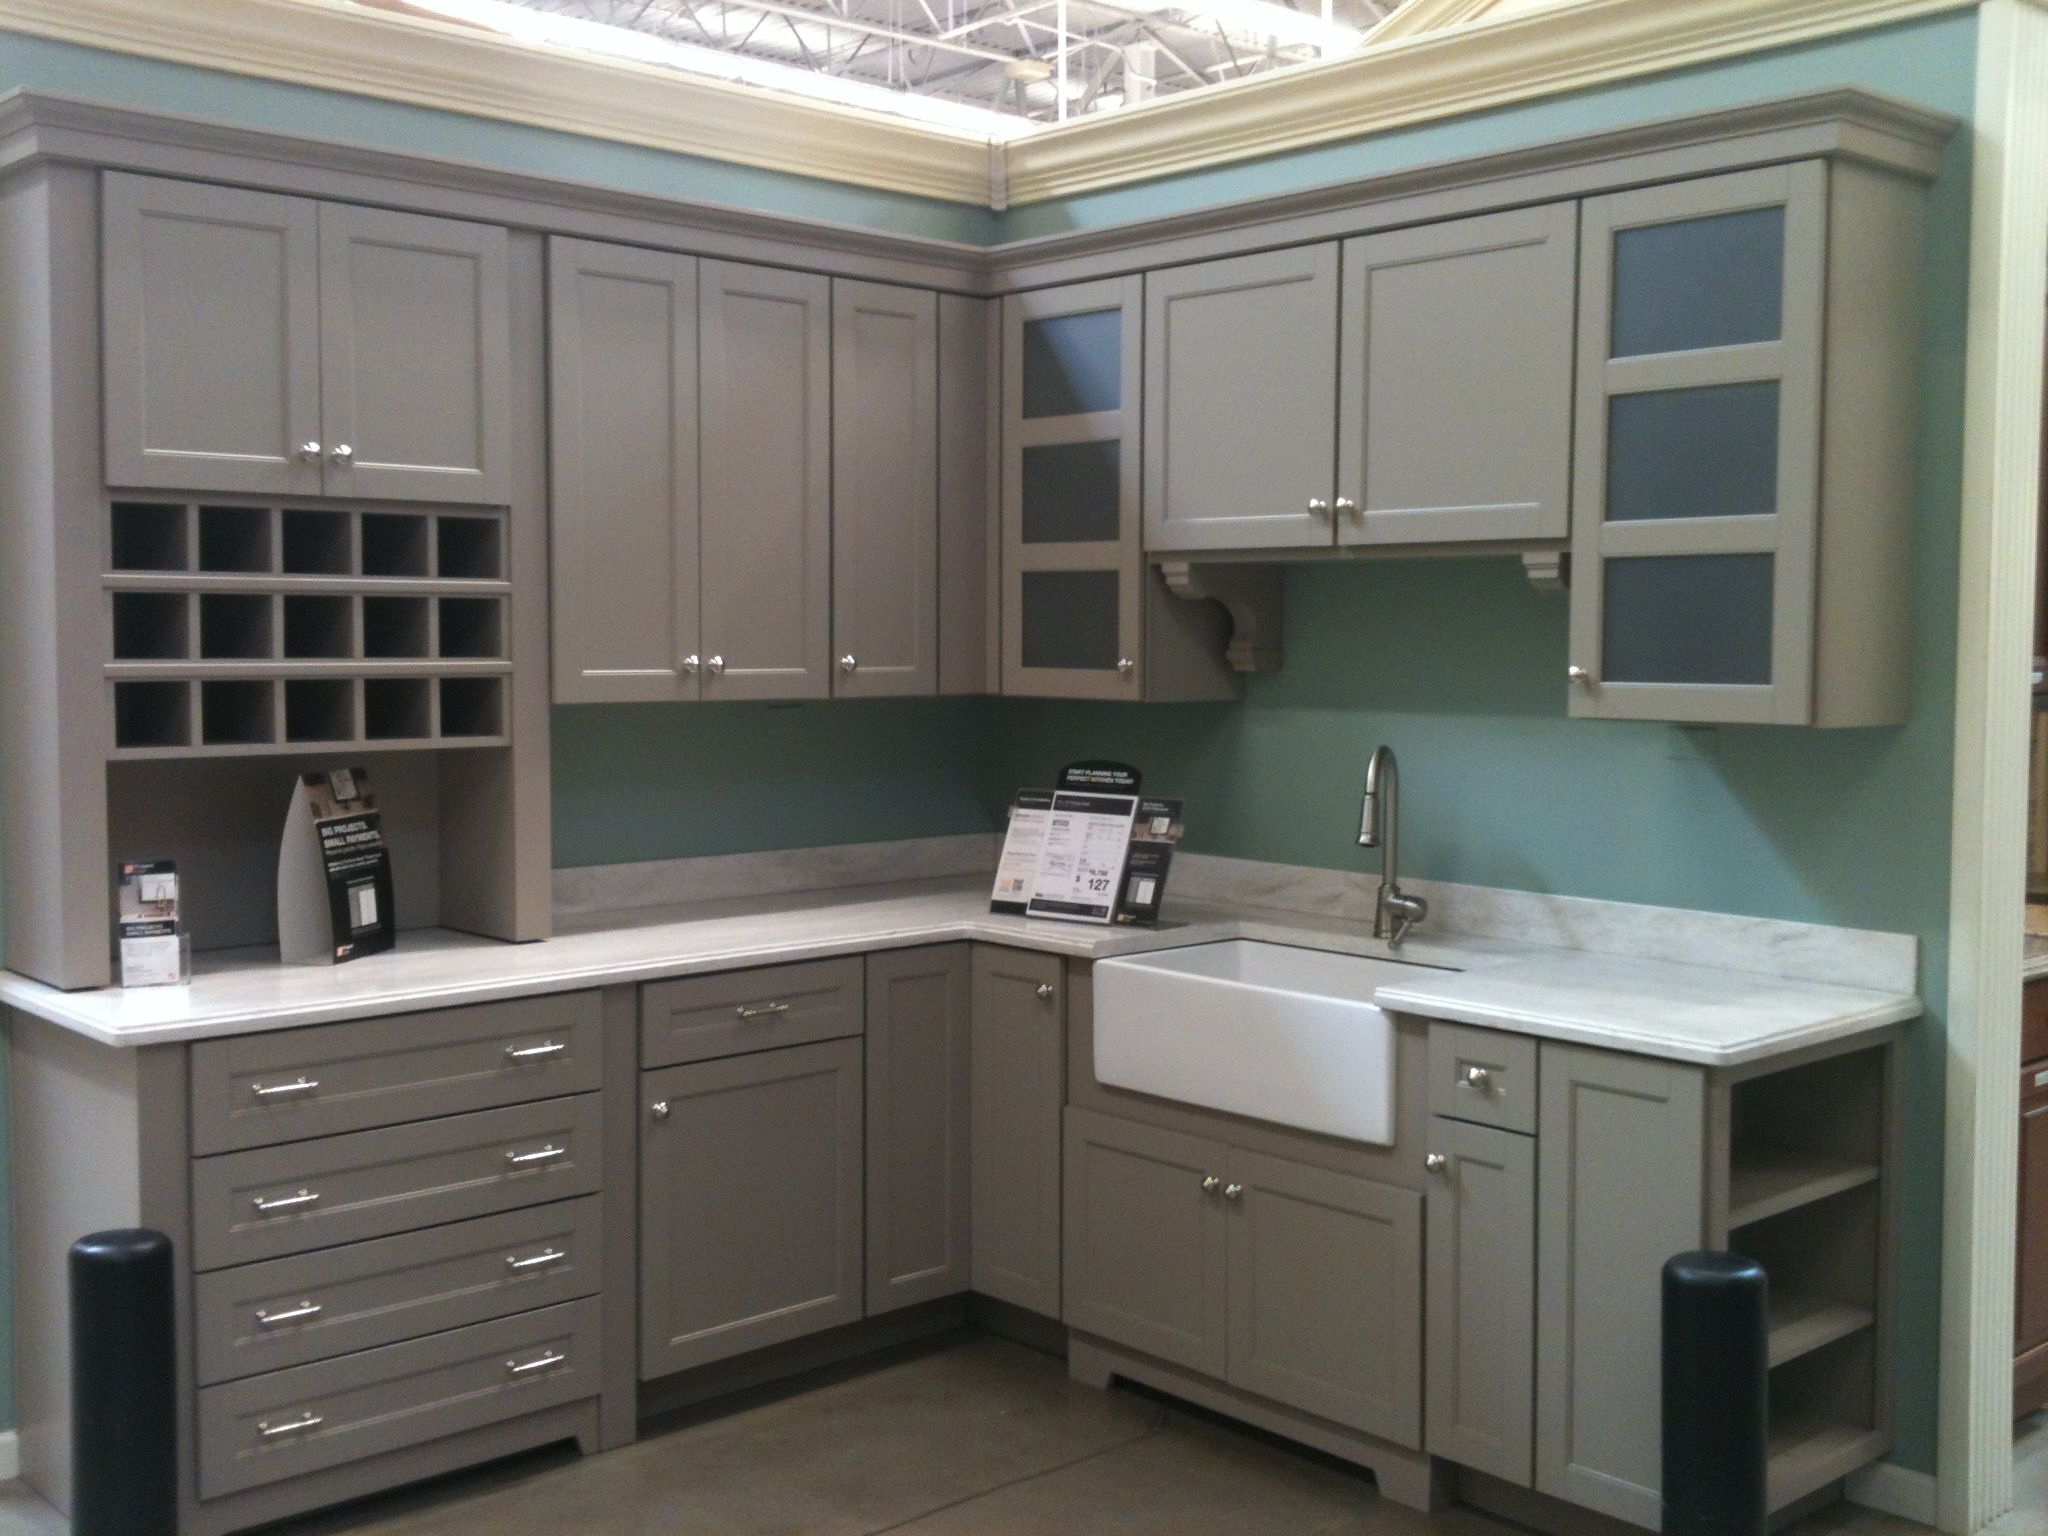 martha stewart cabinets from home depot. like the shelves on the